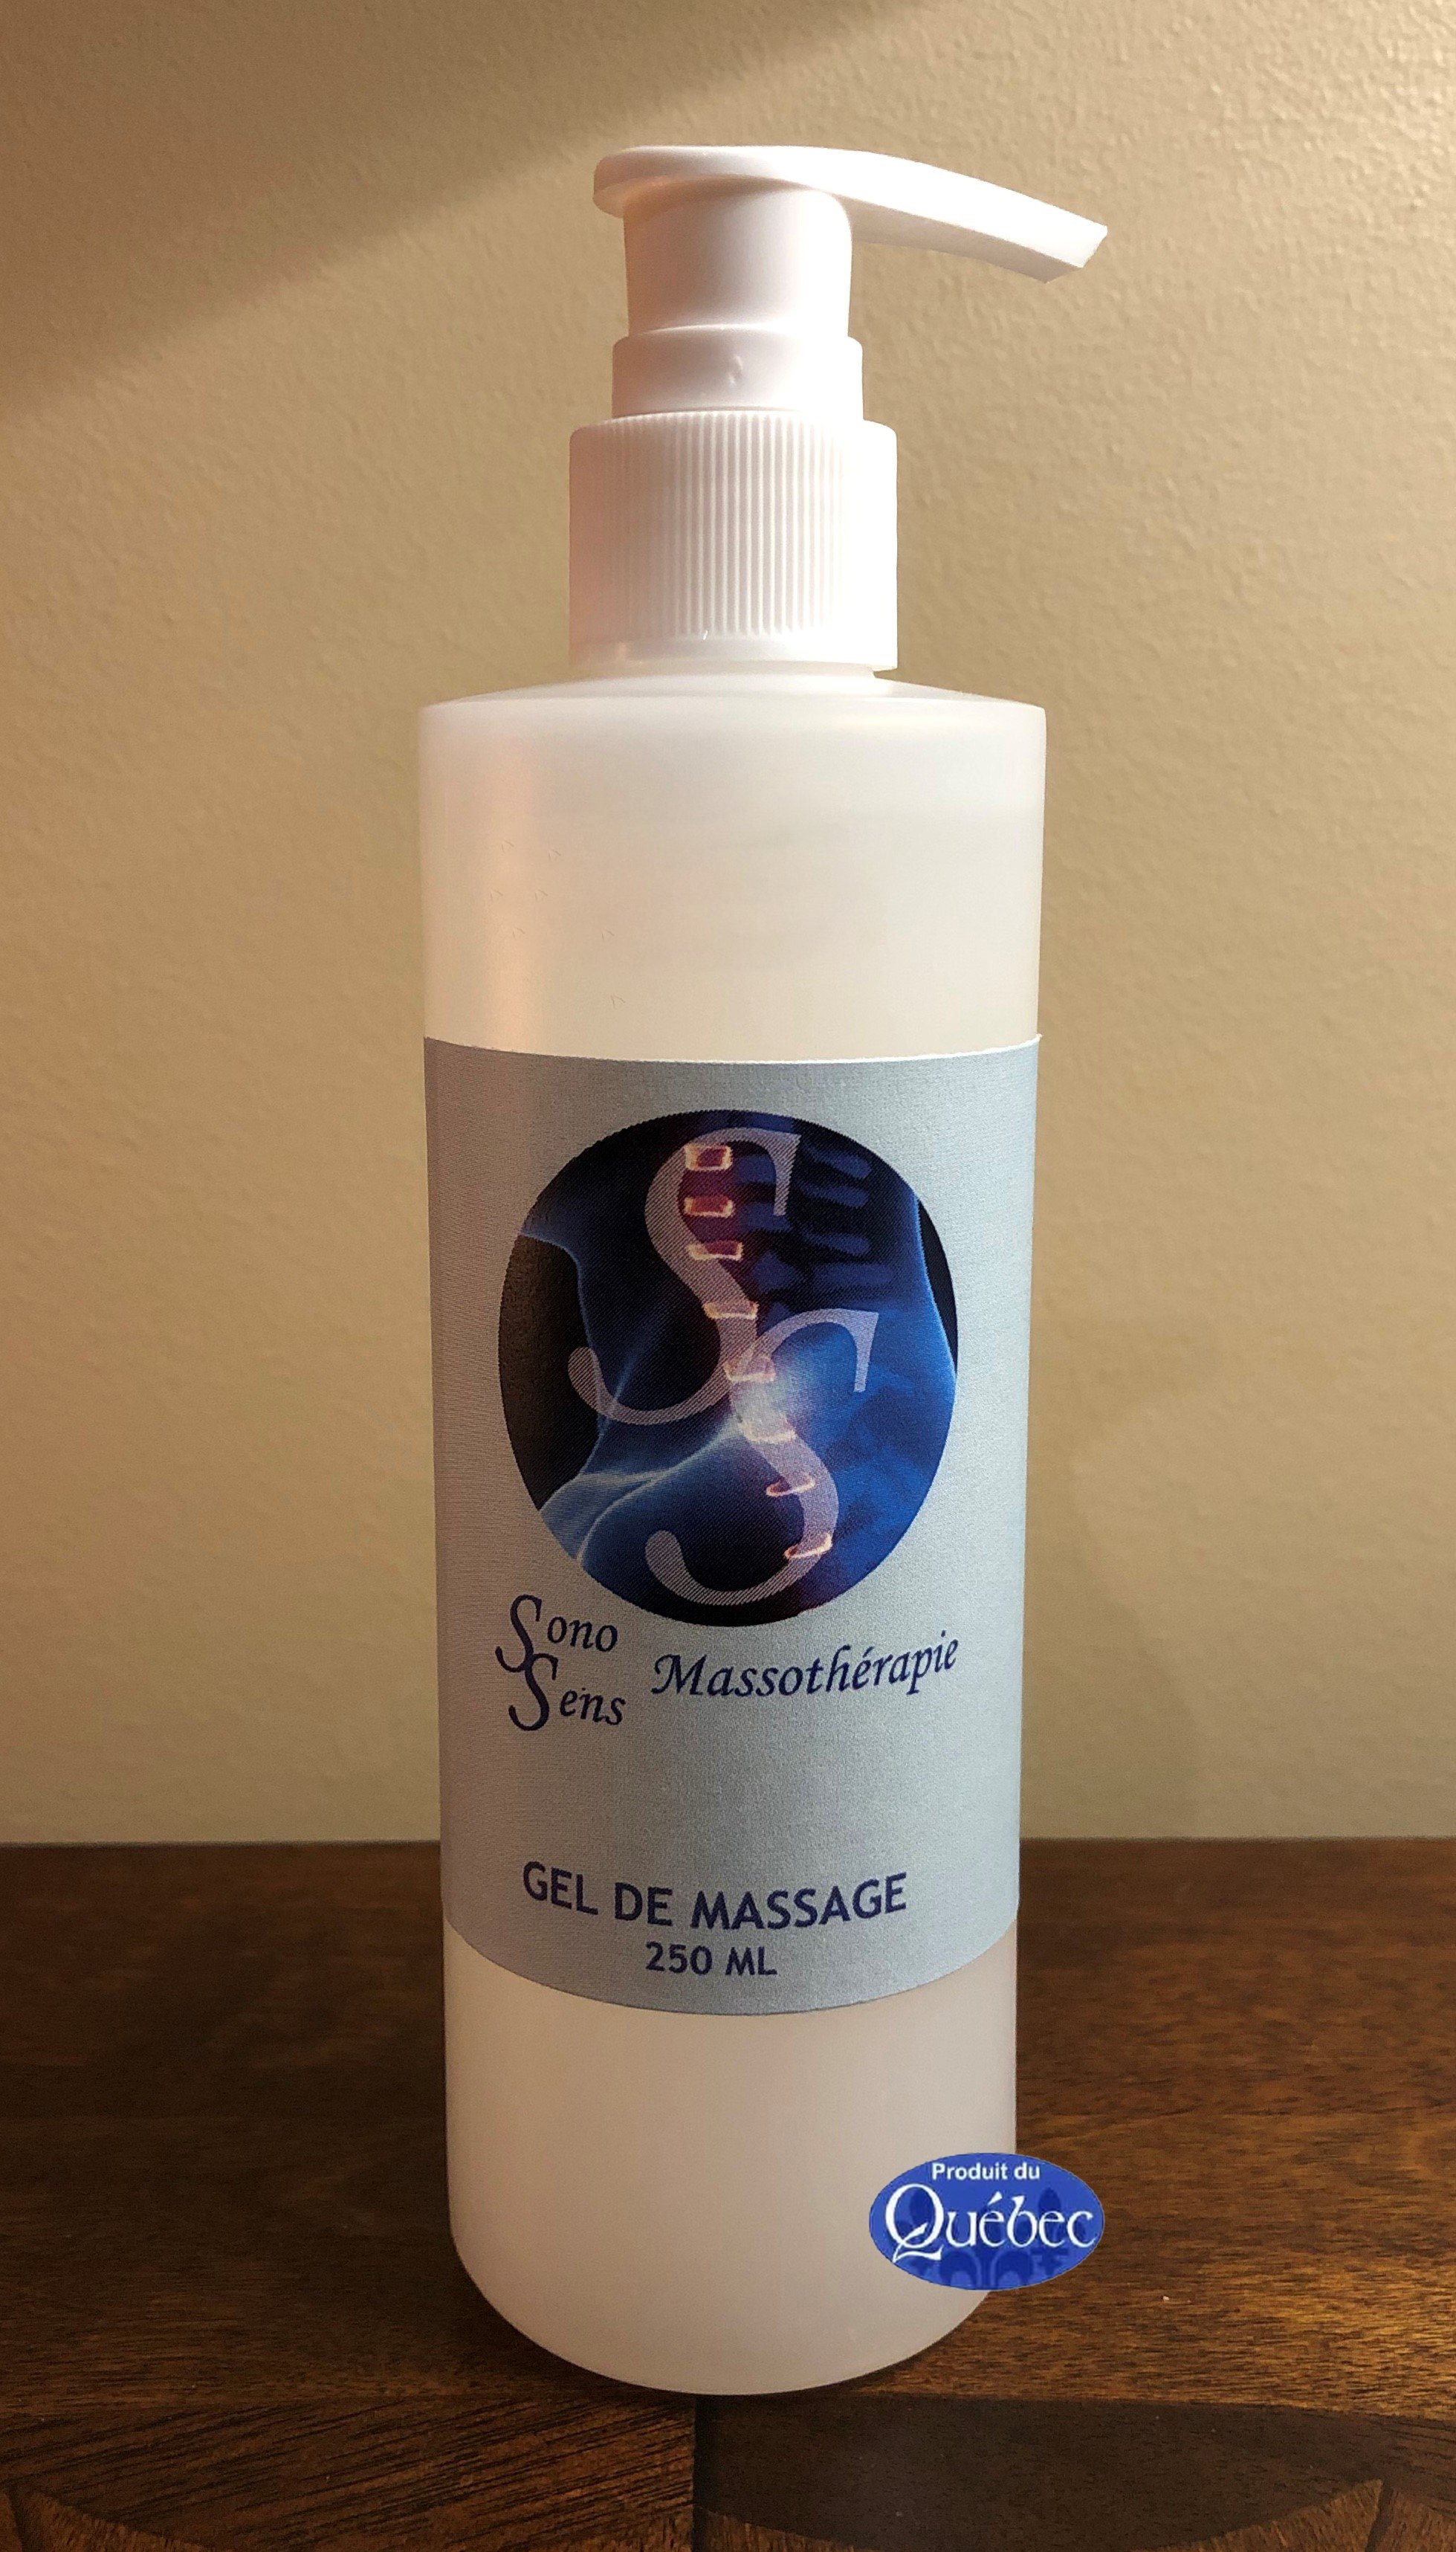 Gel de massage Ridha 250 ml Neutre 10.44$ plus taxes